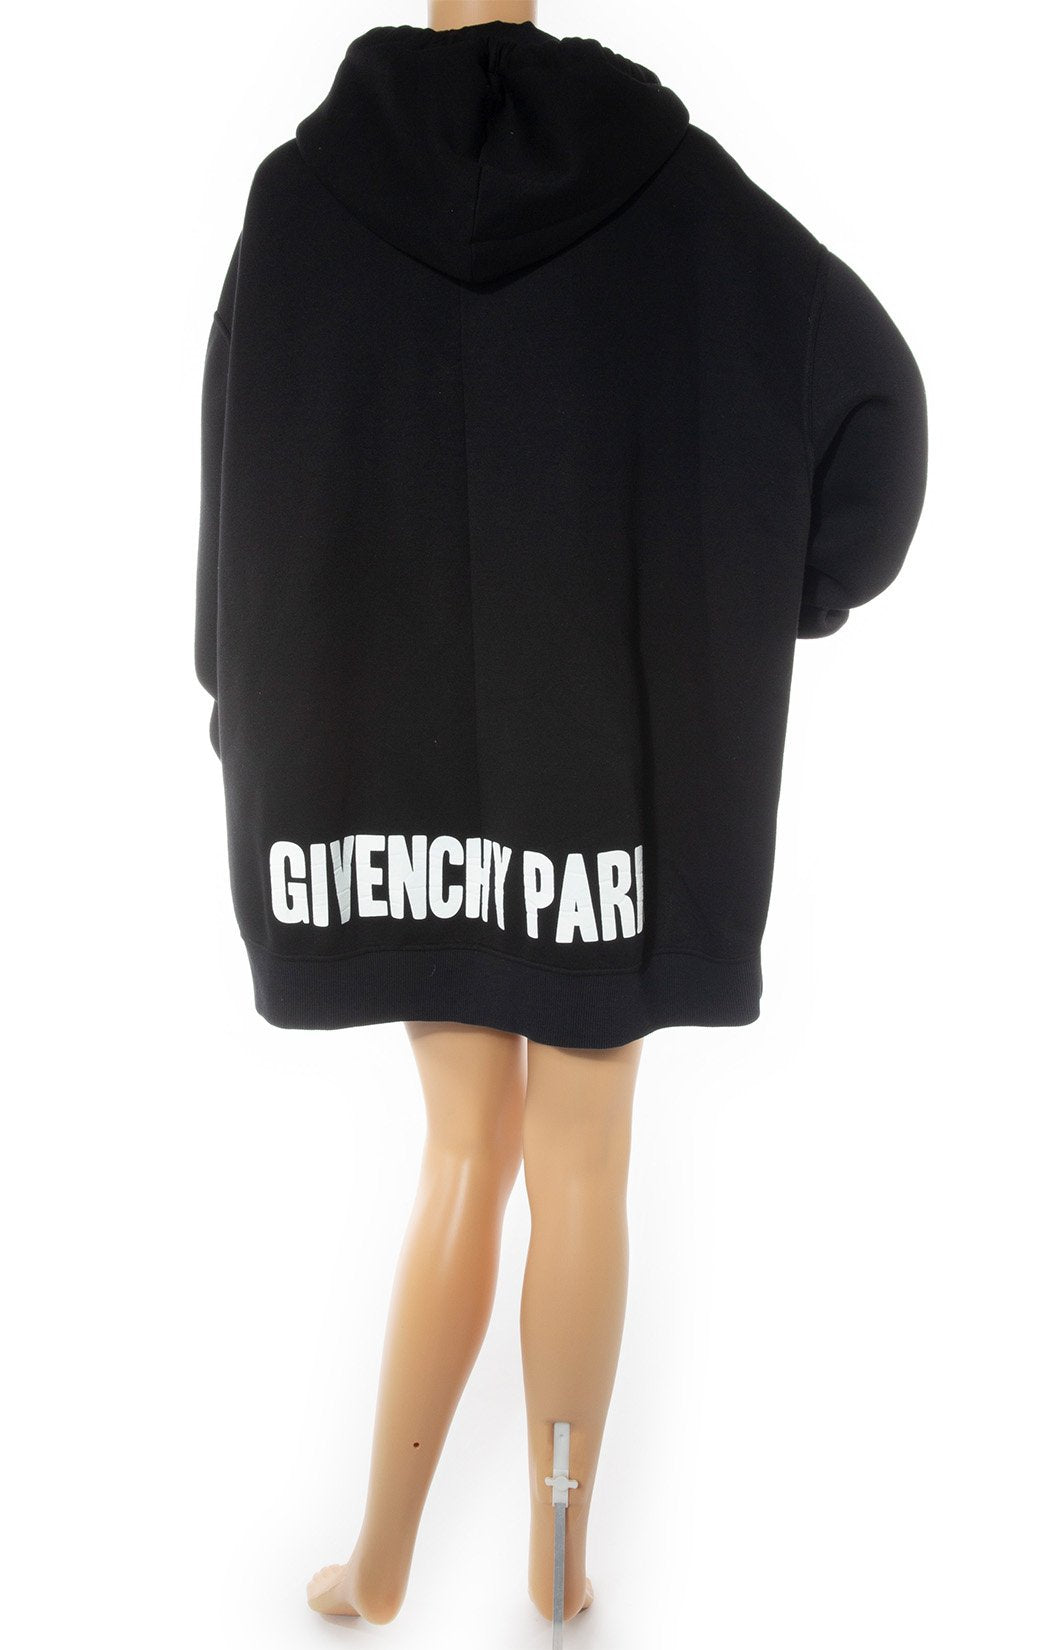 Back view of GIVENCHY Sweatshirt (oversized)